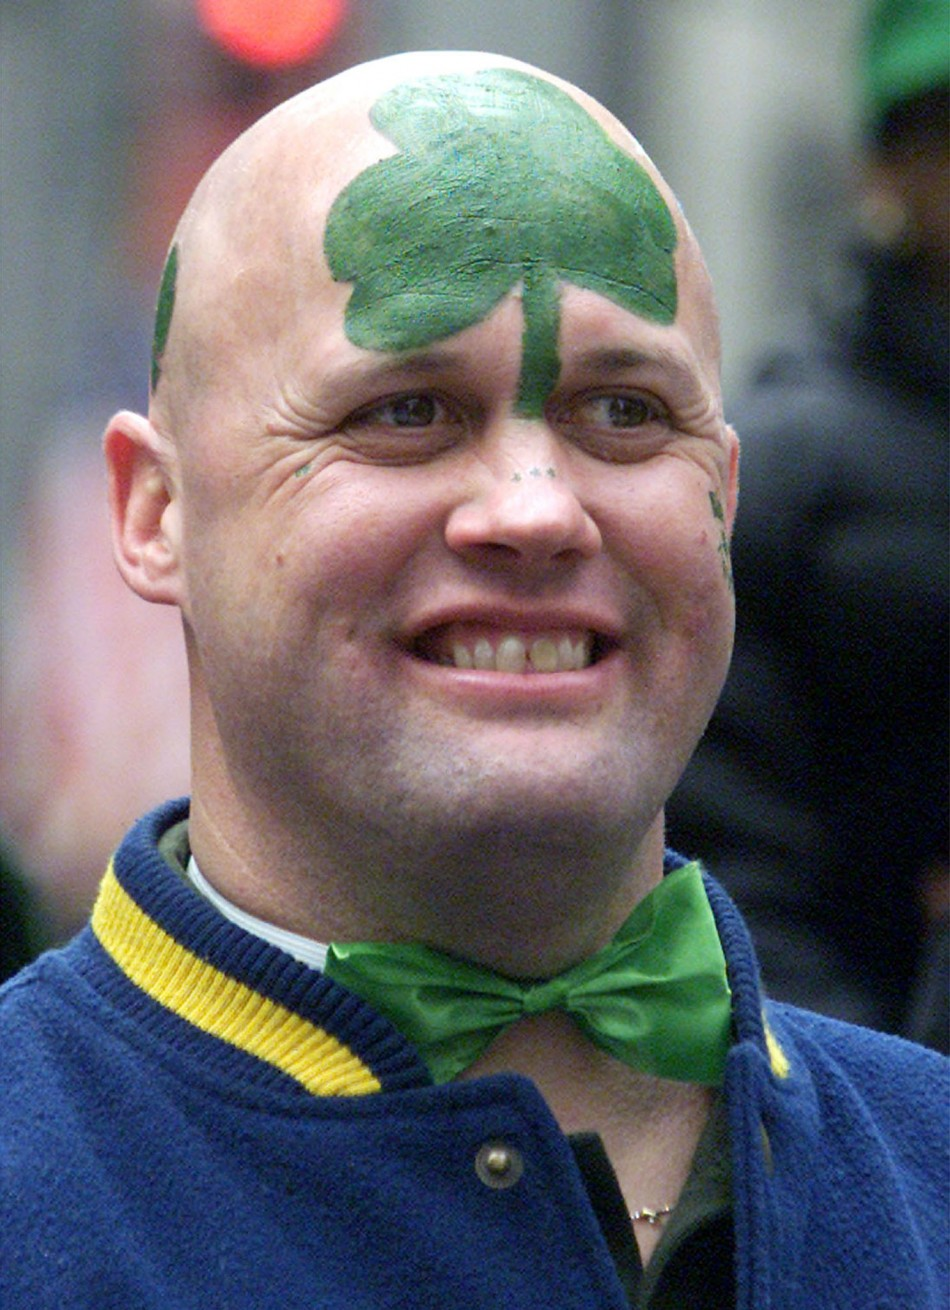 MAN WITH PAINTED HEAD WATCHES SAINT PATRICKS DAY PARADE IN NEW YORK.